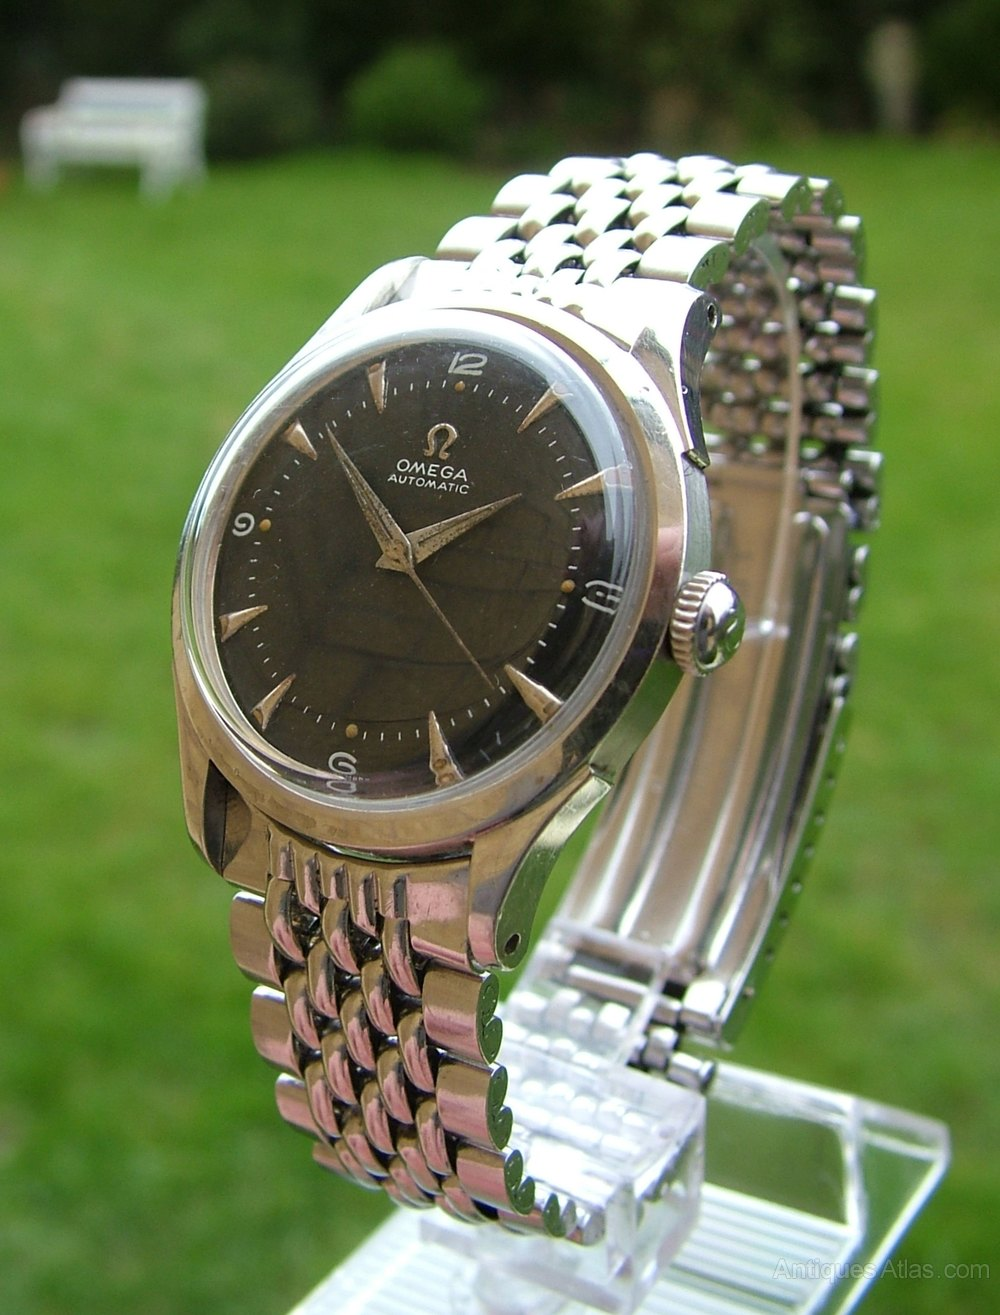 Omega Vintage Mens Wrist Watch Stainless Steel